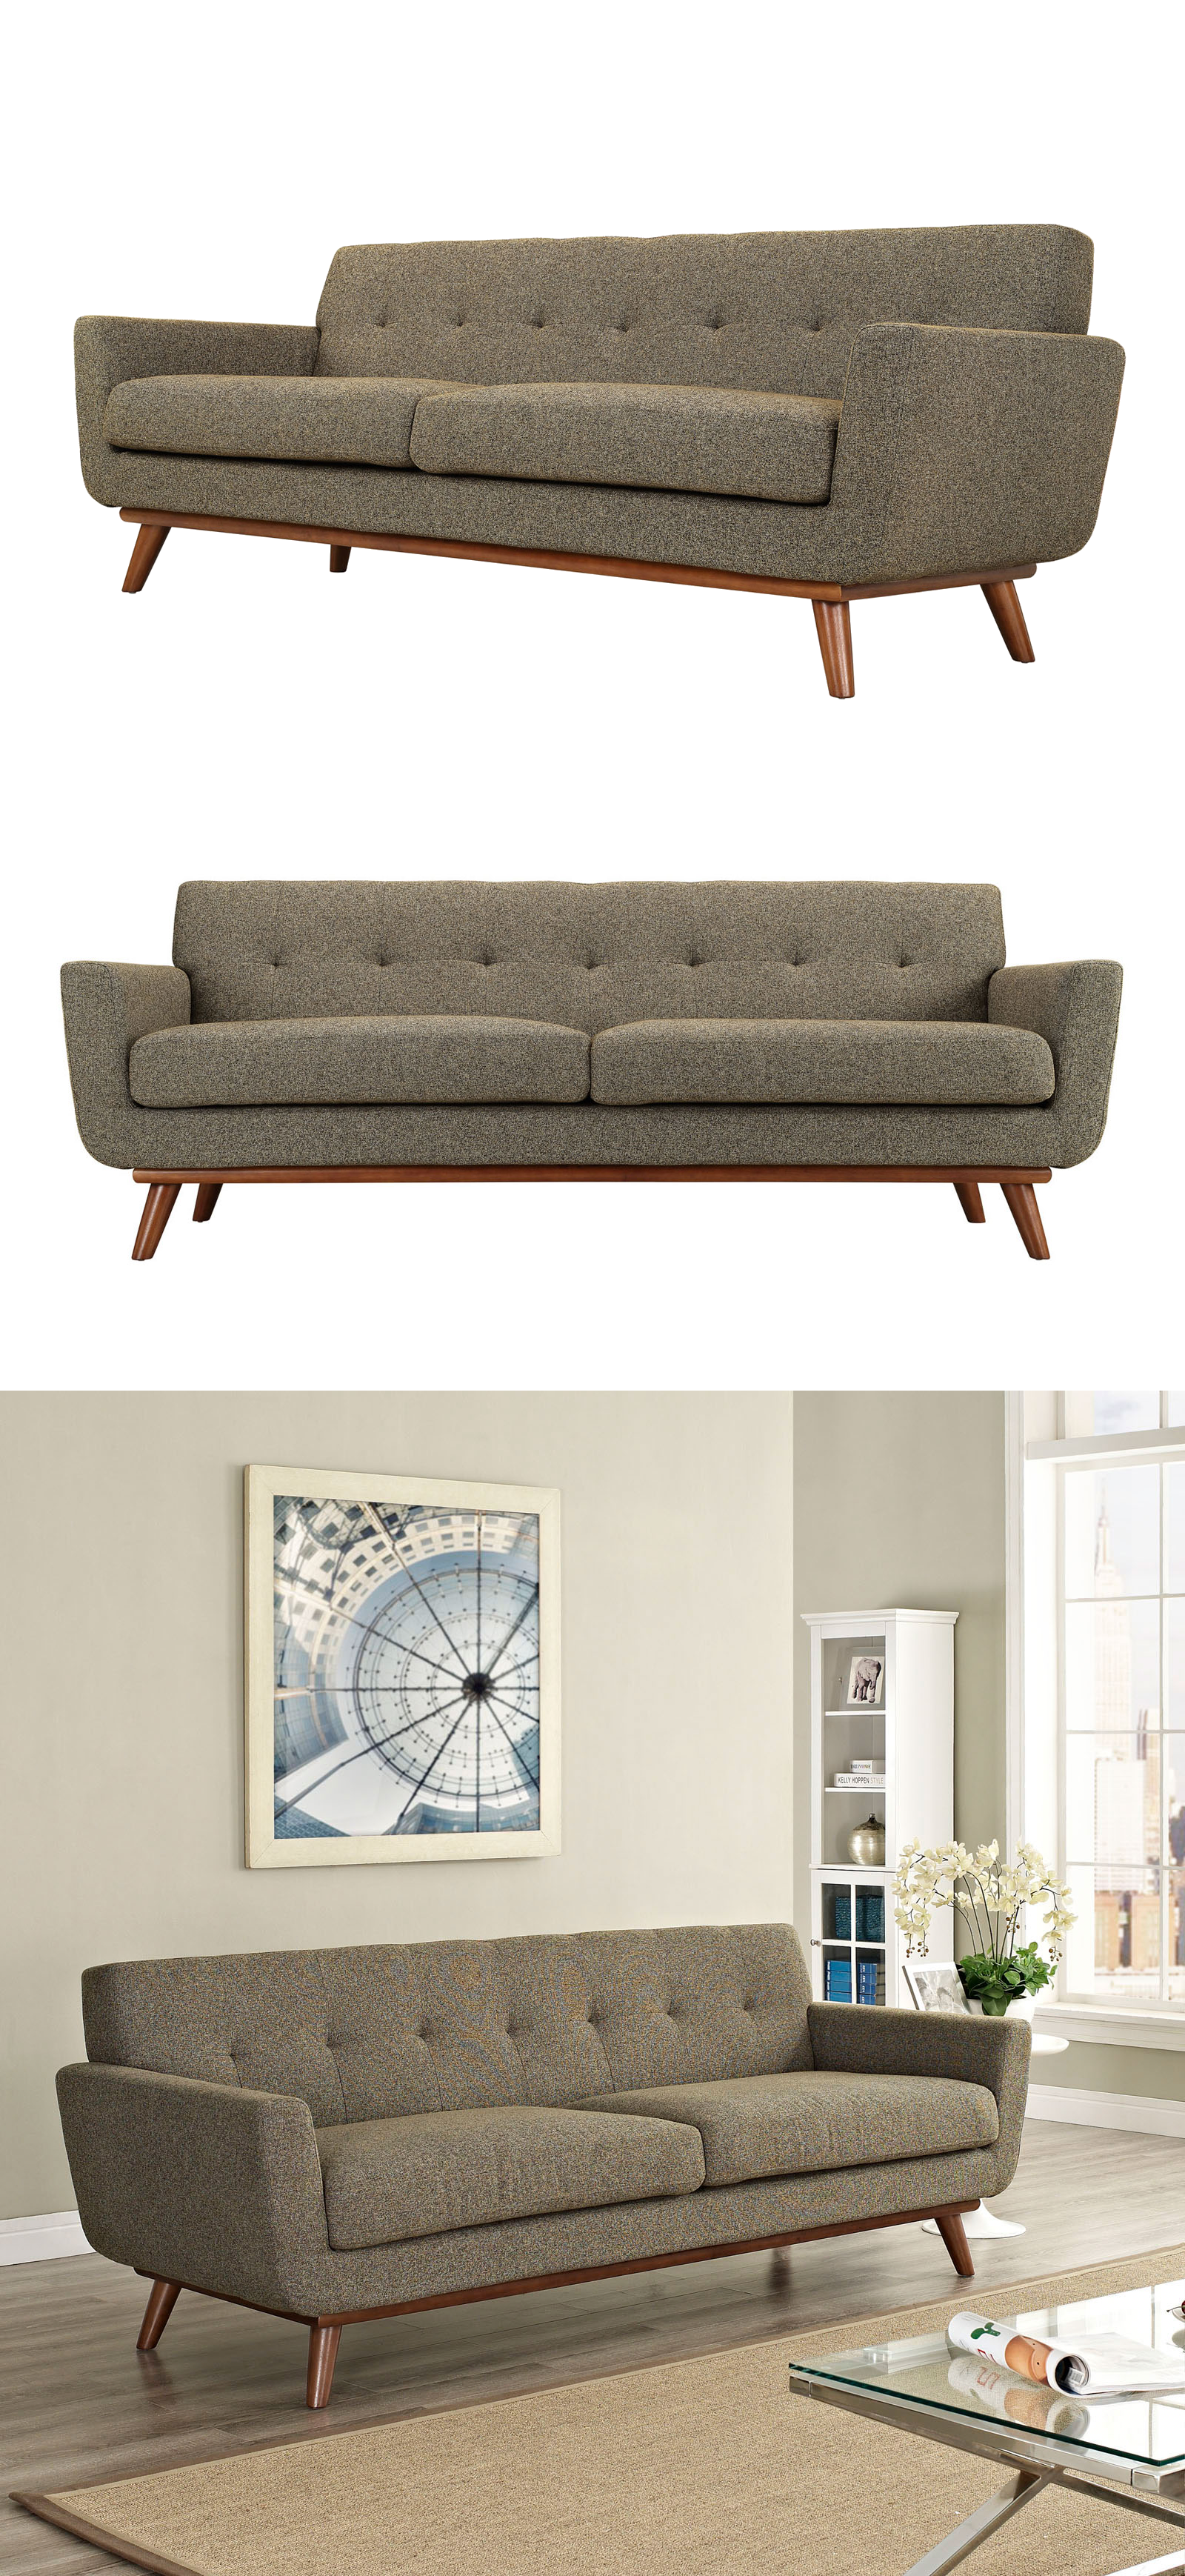 Spiers Sofa Review Nice Sofas In Kenya Furniture And Decor For The Modern Lifestyle Home Your Friends Family Alike Will Enjoy Sitting Pretty It Features